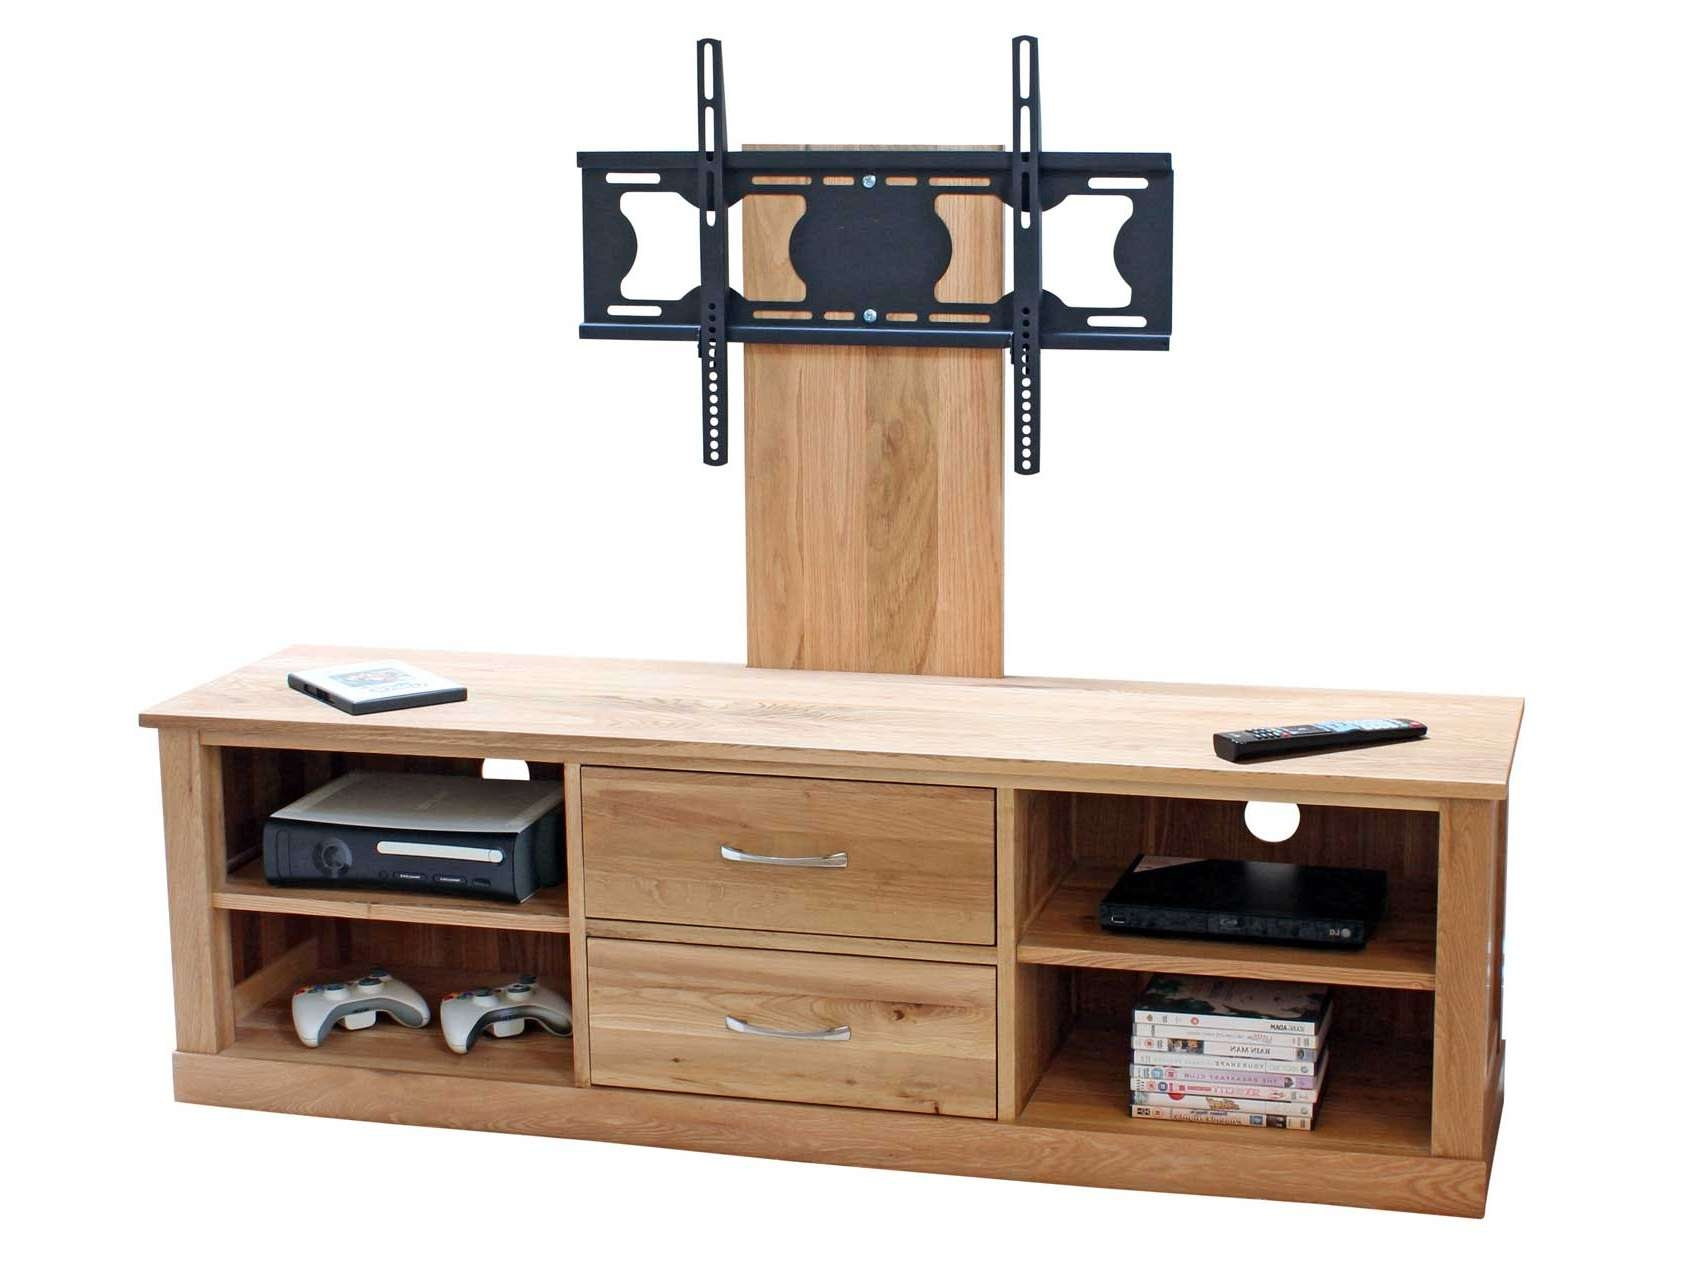 Home Decor: Wonderful Flat Screen Tv Stands With Mounts And Cool With Cheap Oak Tv Stands (View 10 of 15)